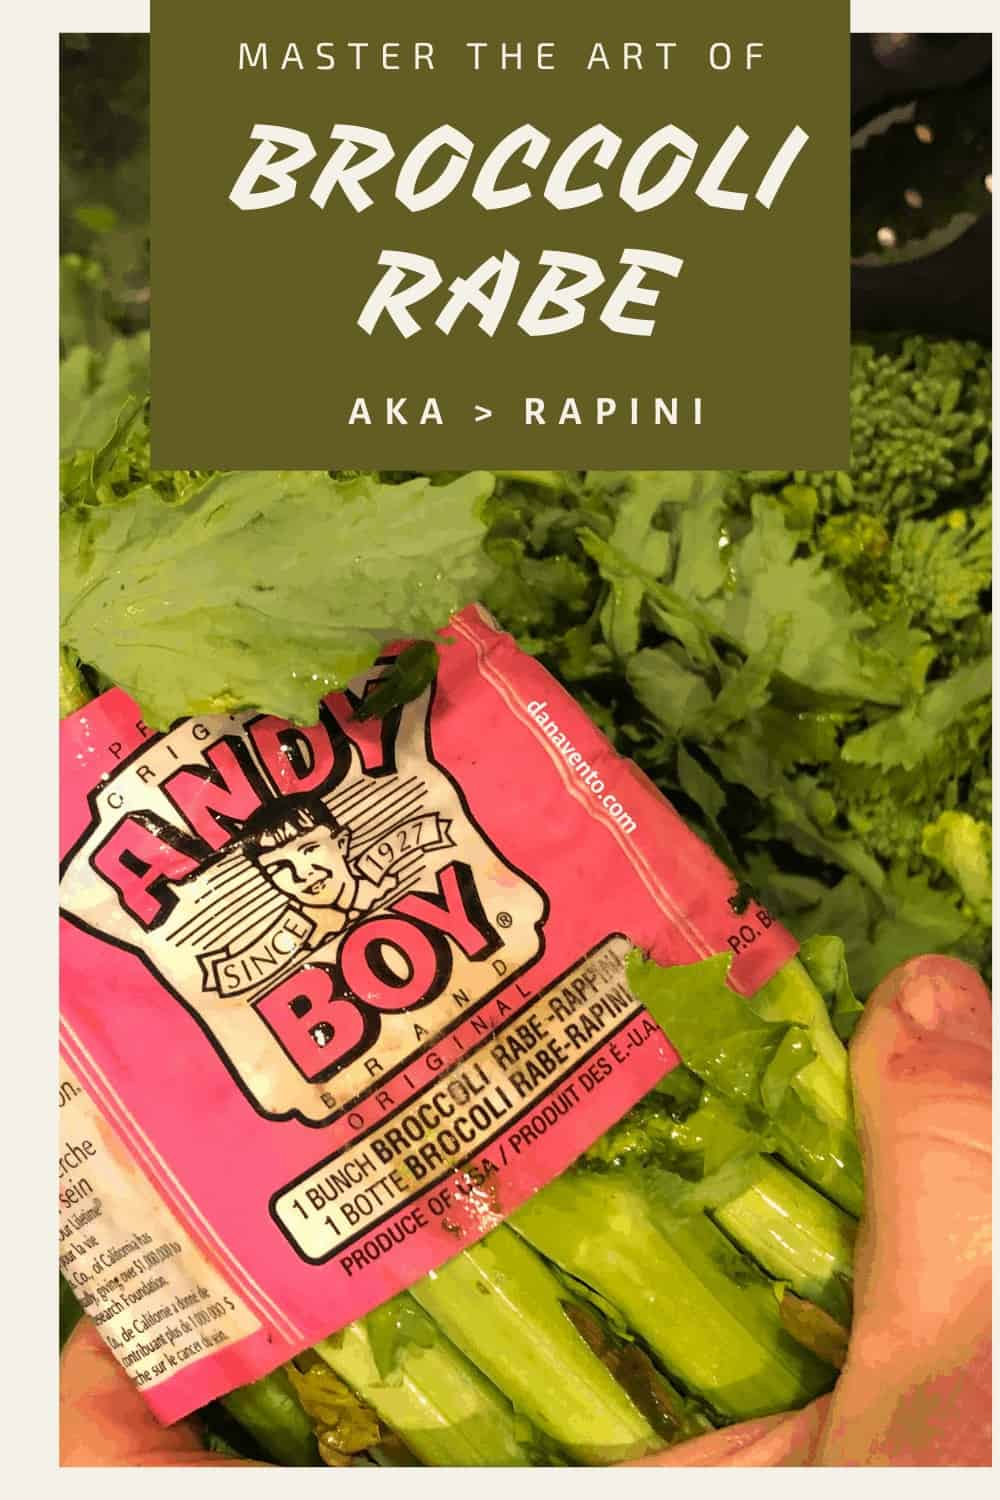 broccoli rabe in wrapper, sharing the name, broccoli rabe and rapinin